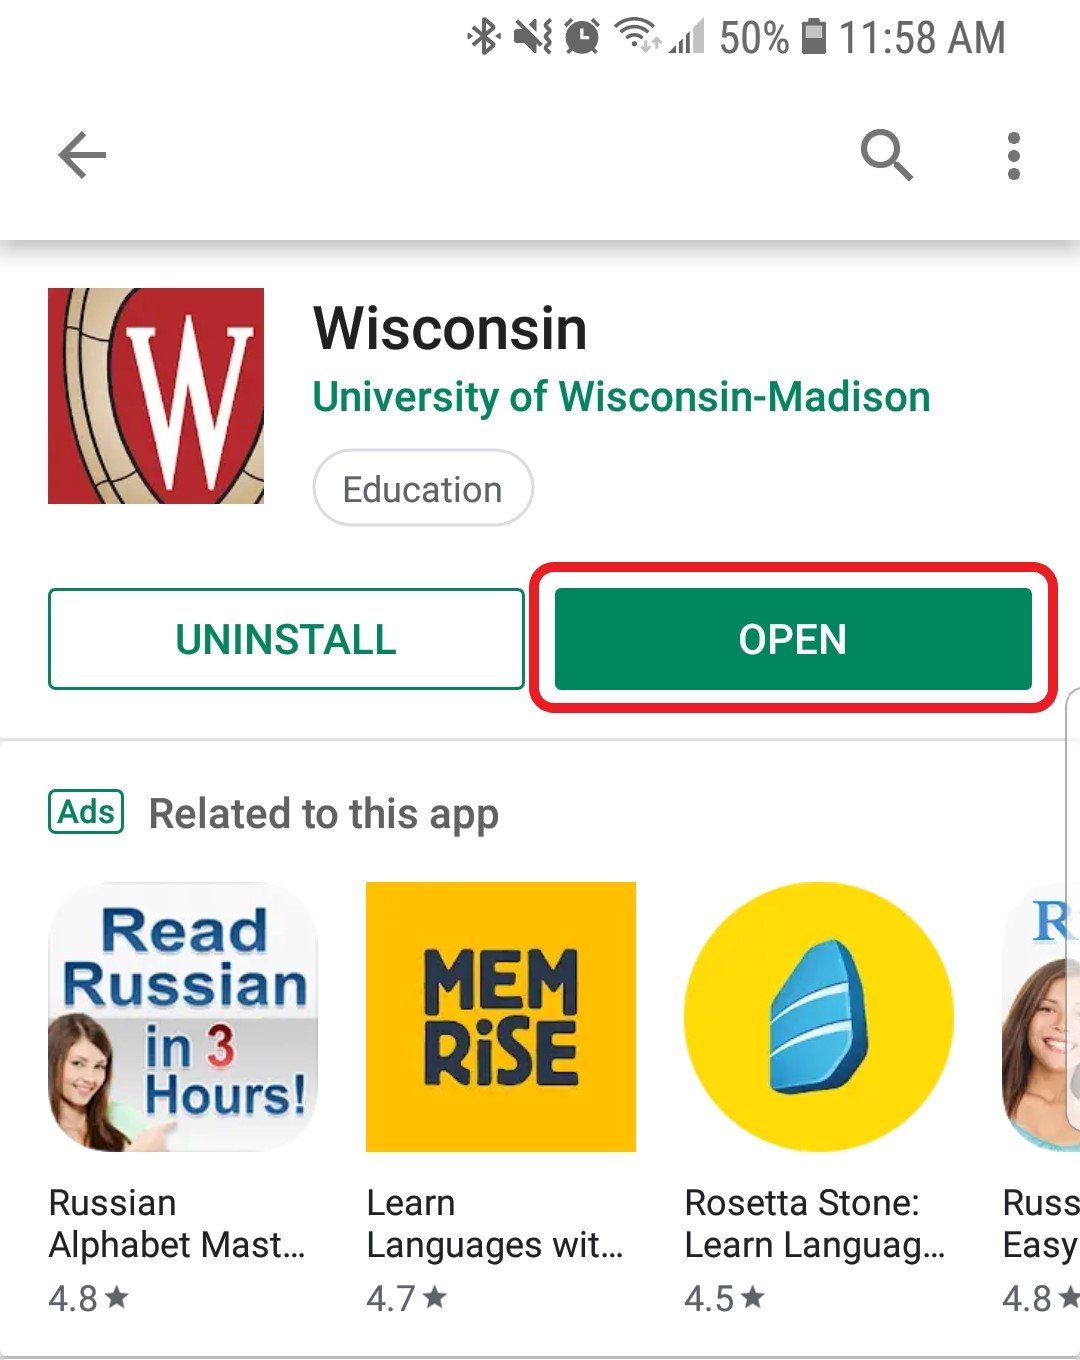 The Wisconsin App is ready to be opened